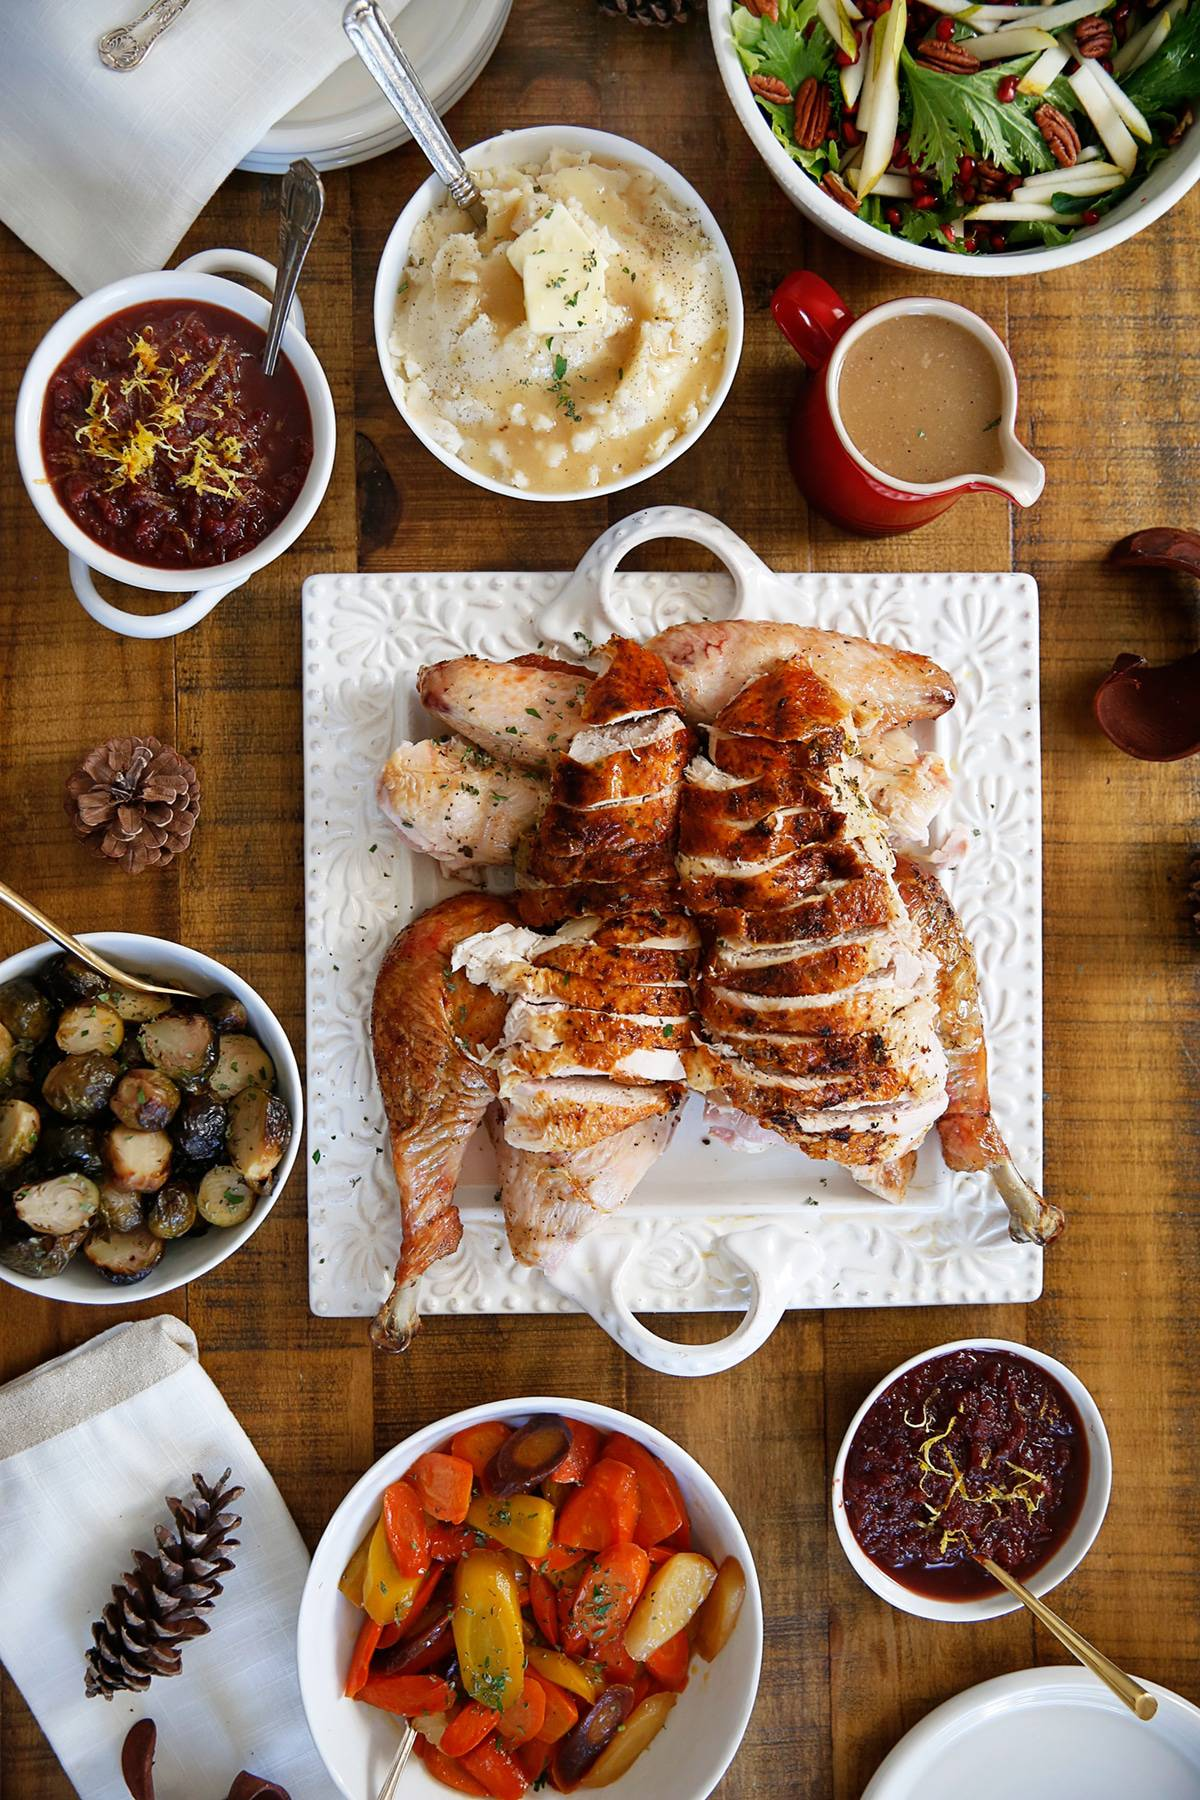 Best oven roasted turkey recipe for thanksgiving